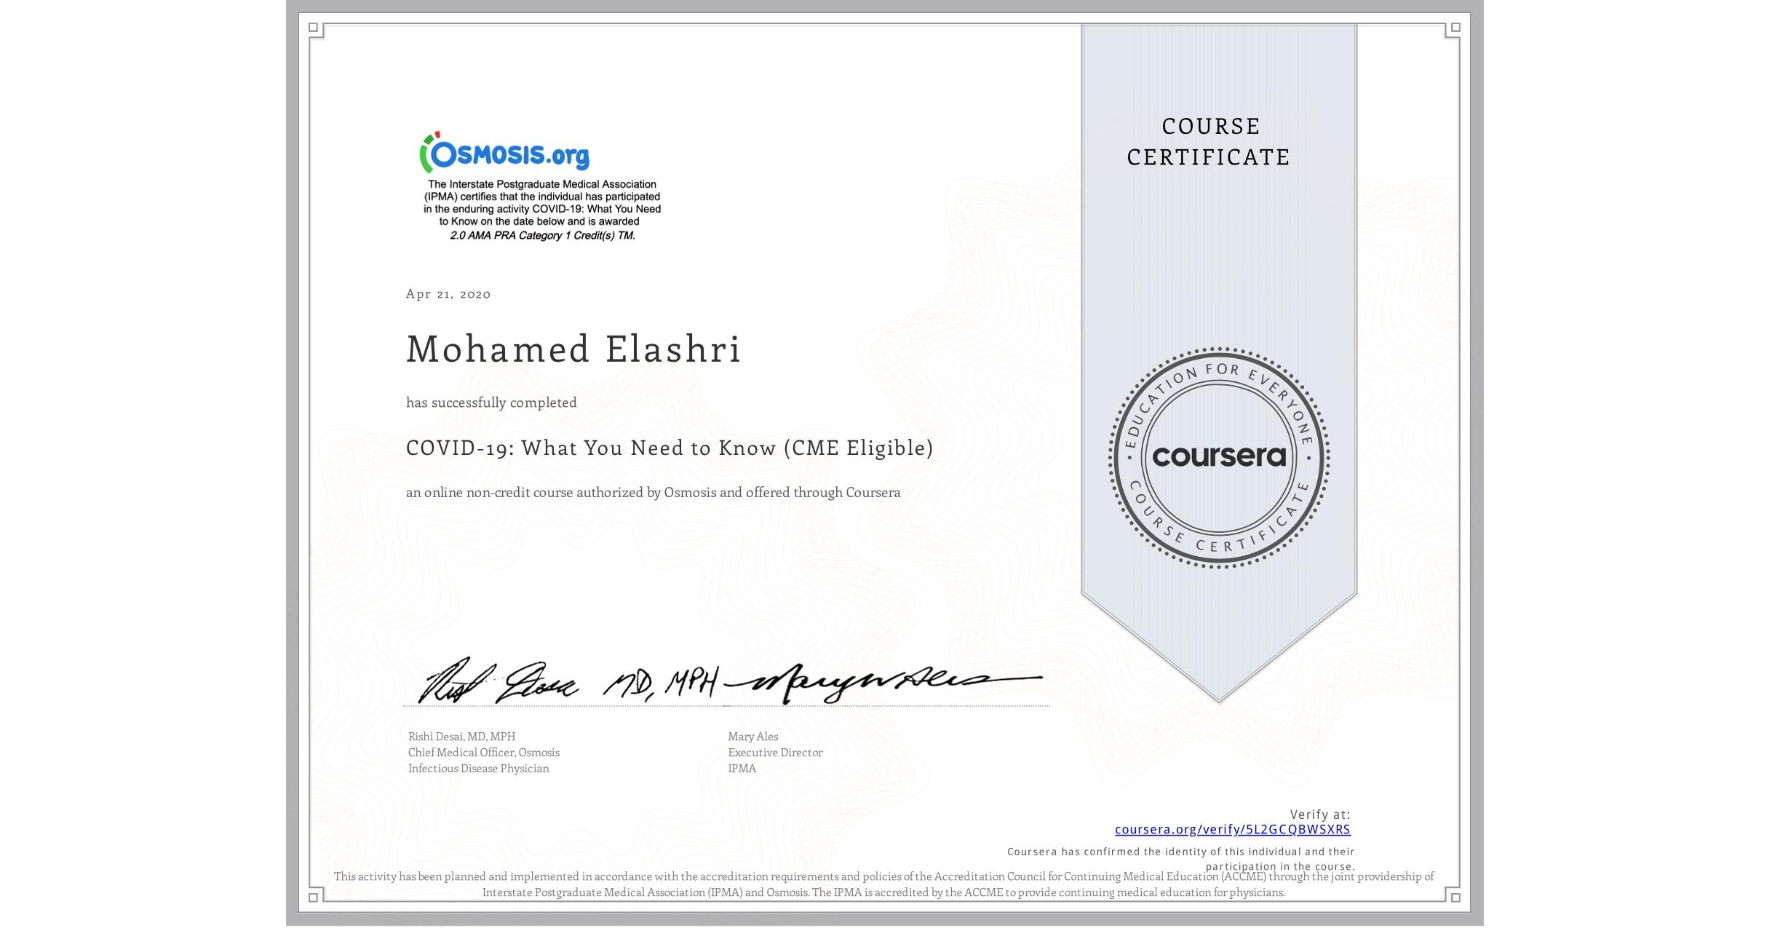 View certificate for Mohamed Elashri, COVID-19: What You Need to Know (CME Eligible), an online non-credit course authorized by Osmosis and offered through Coursera